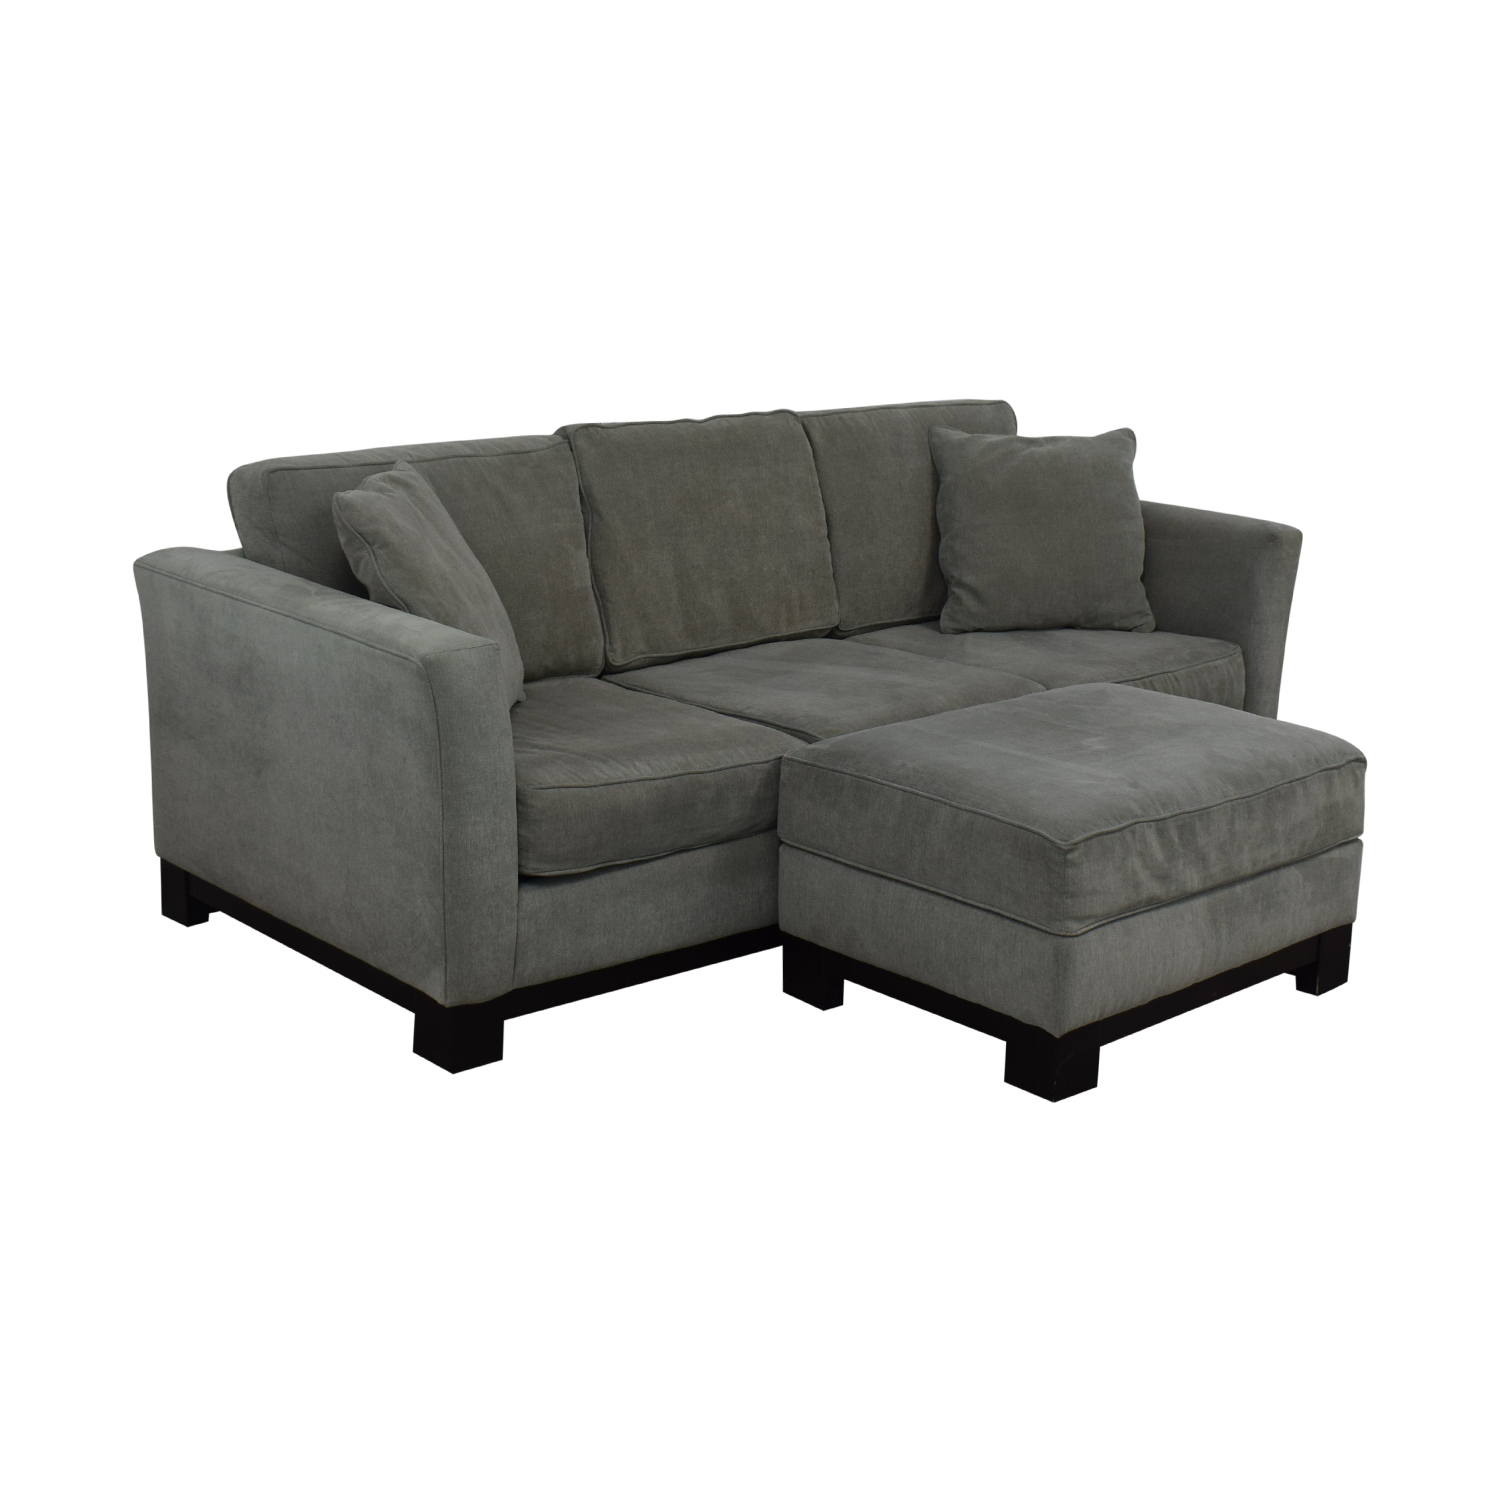 Macy's Macy's Modern Three Cushion Sofa And Ottoman on sale